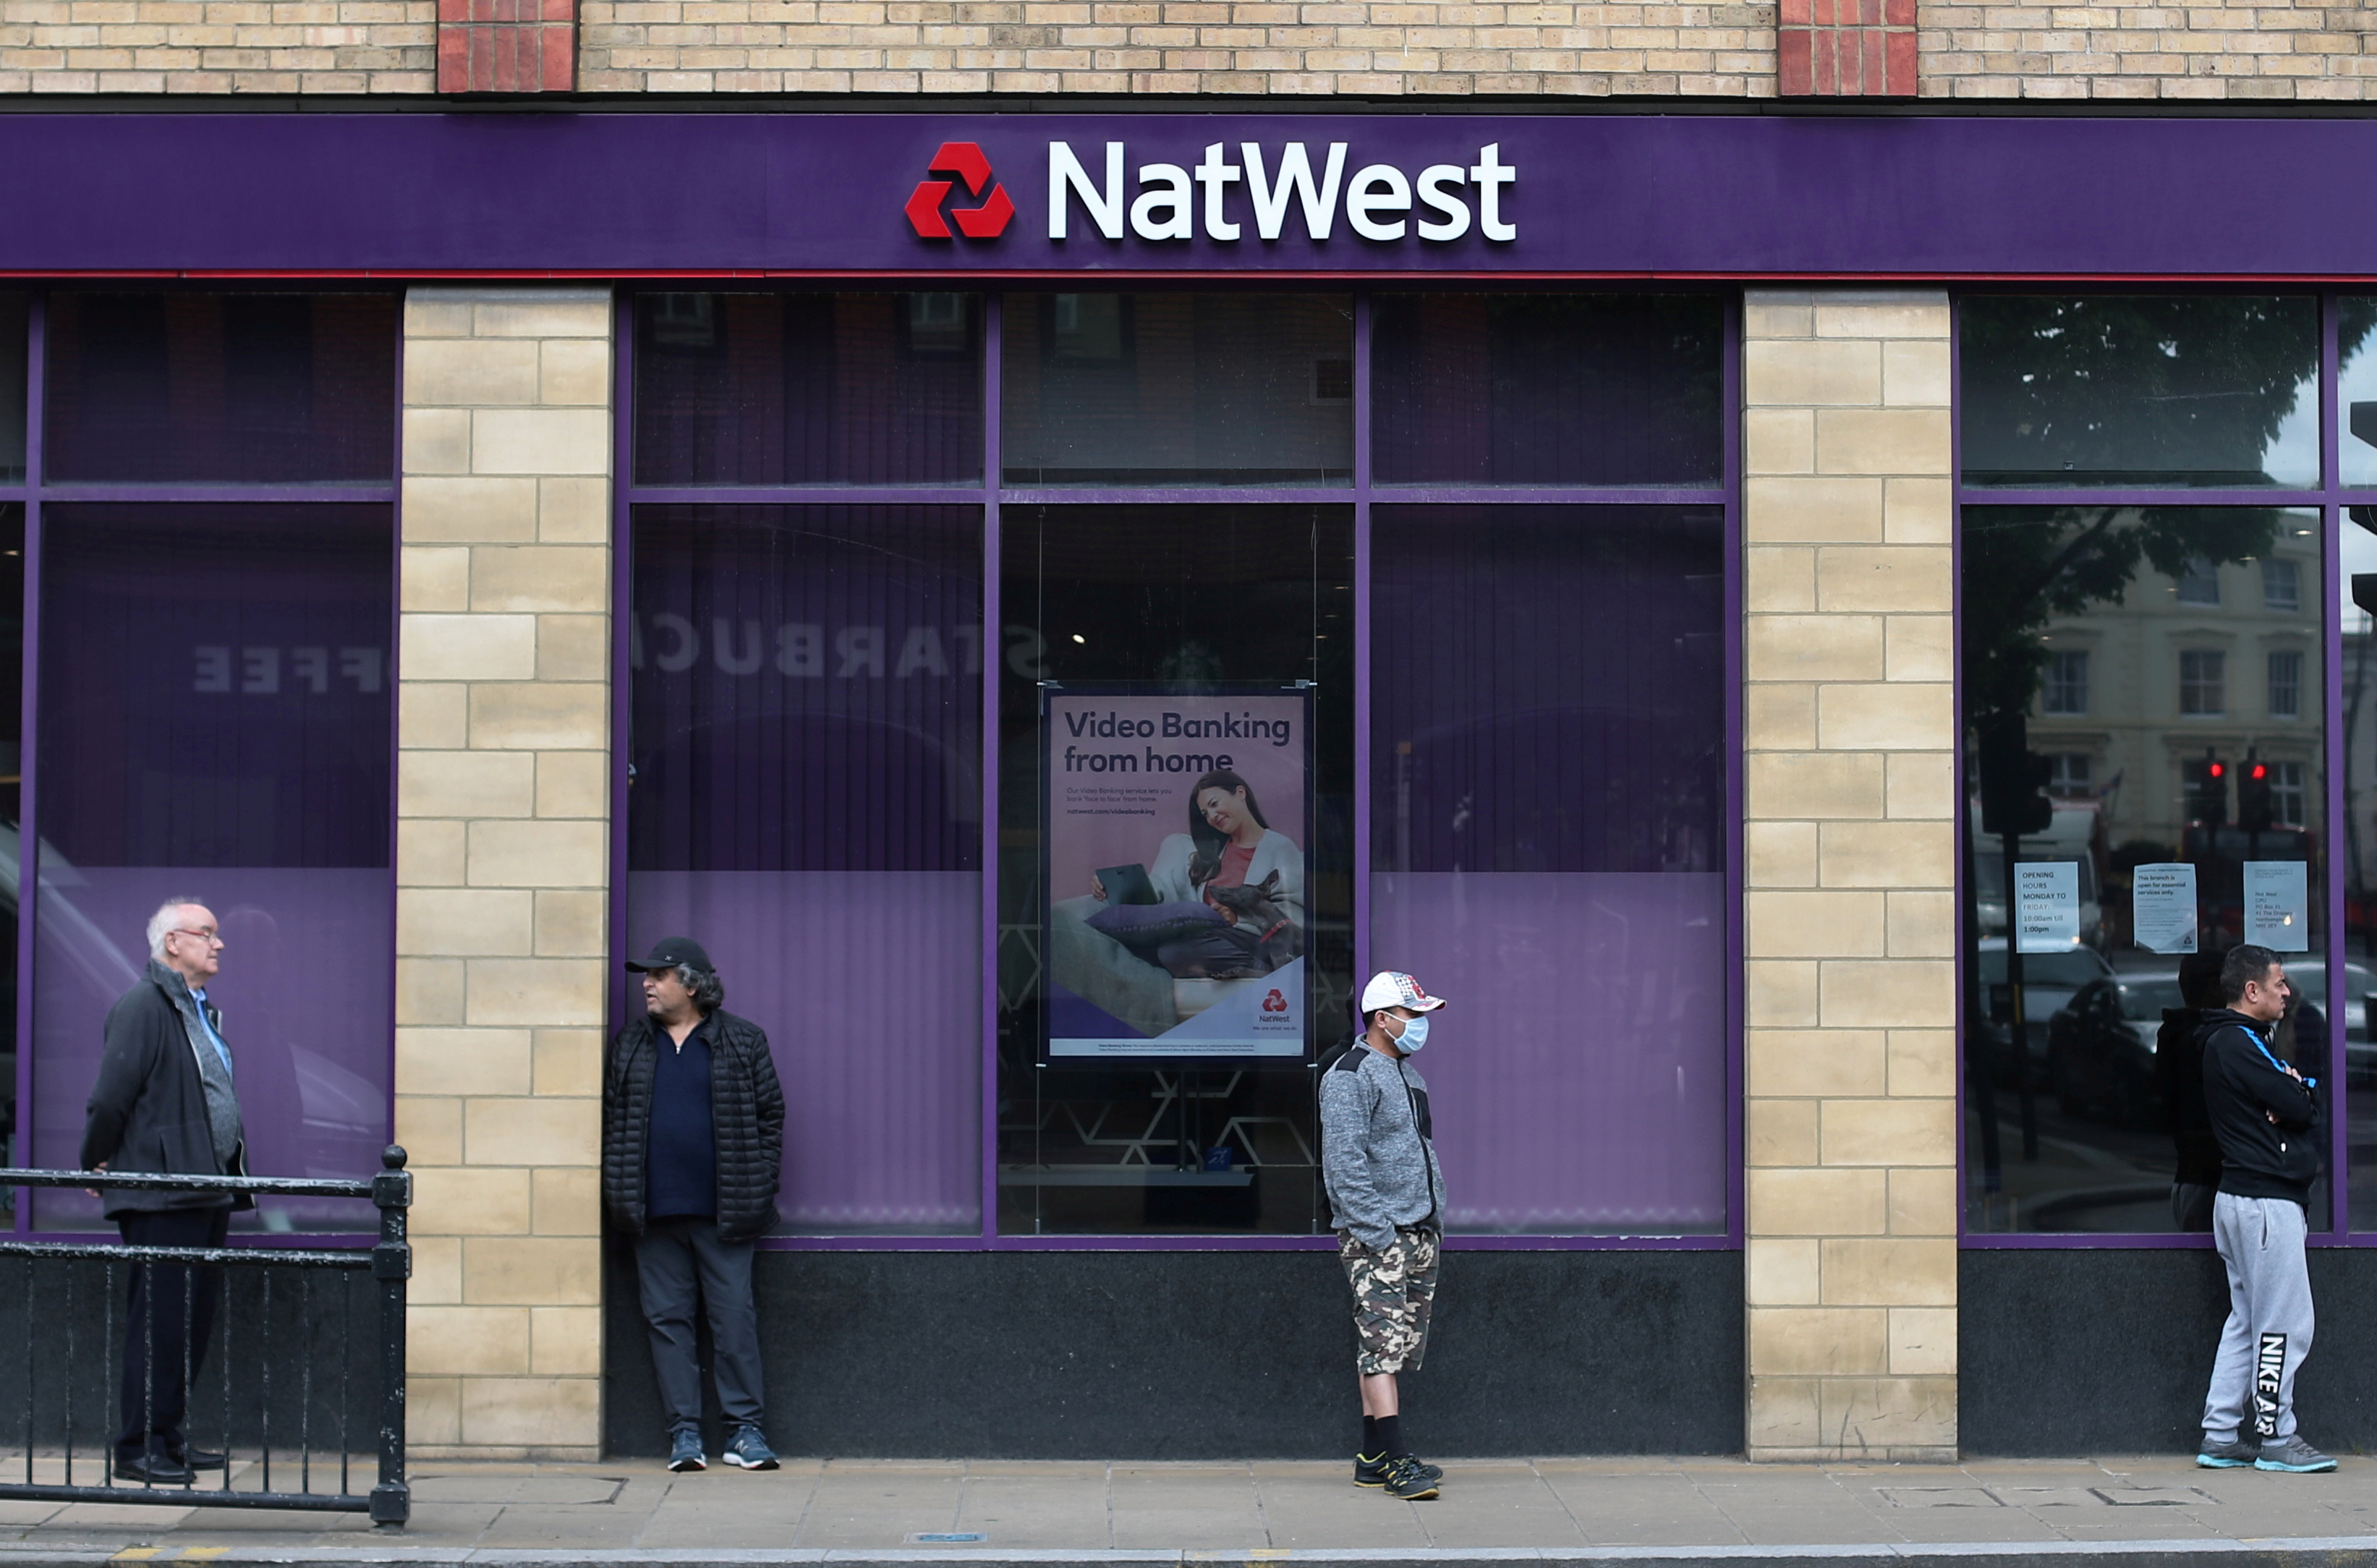 People maintain social distance while they queue outside a Natwest bank in Wimbledon, following the outbreak of the coronavirus disease (COVID-19), London, Britain, May 1, 2020. REUTERS/Hannah McKay